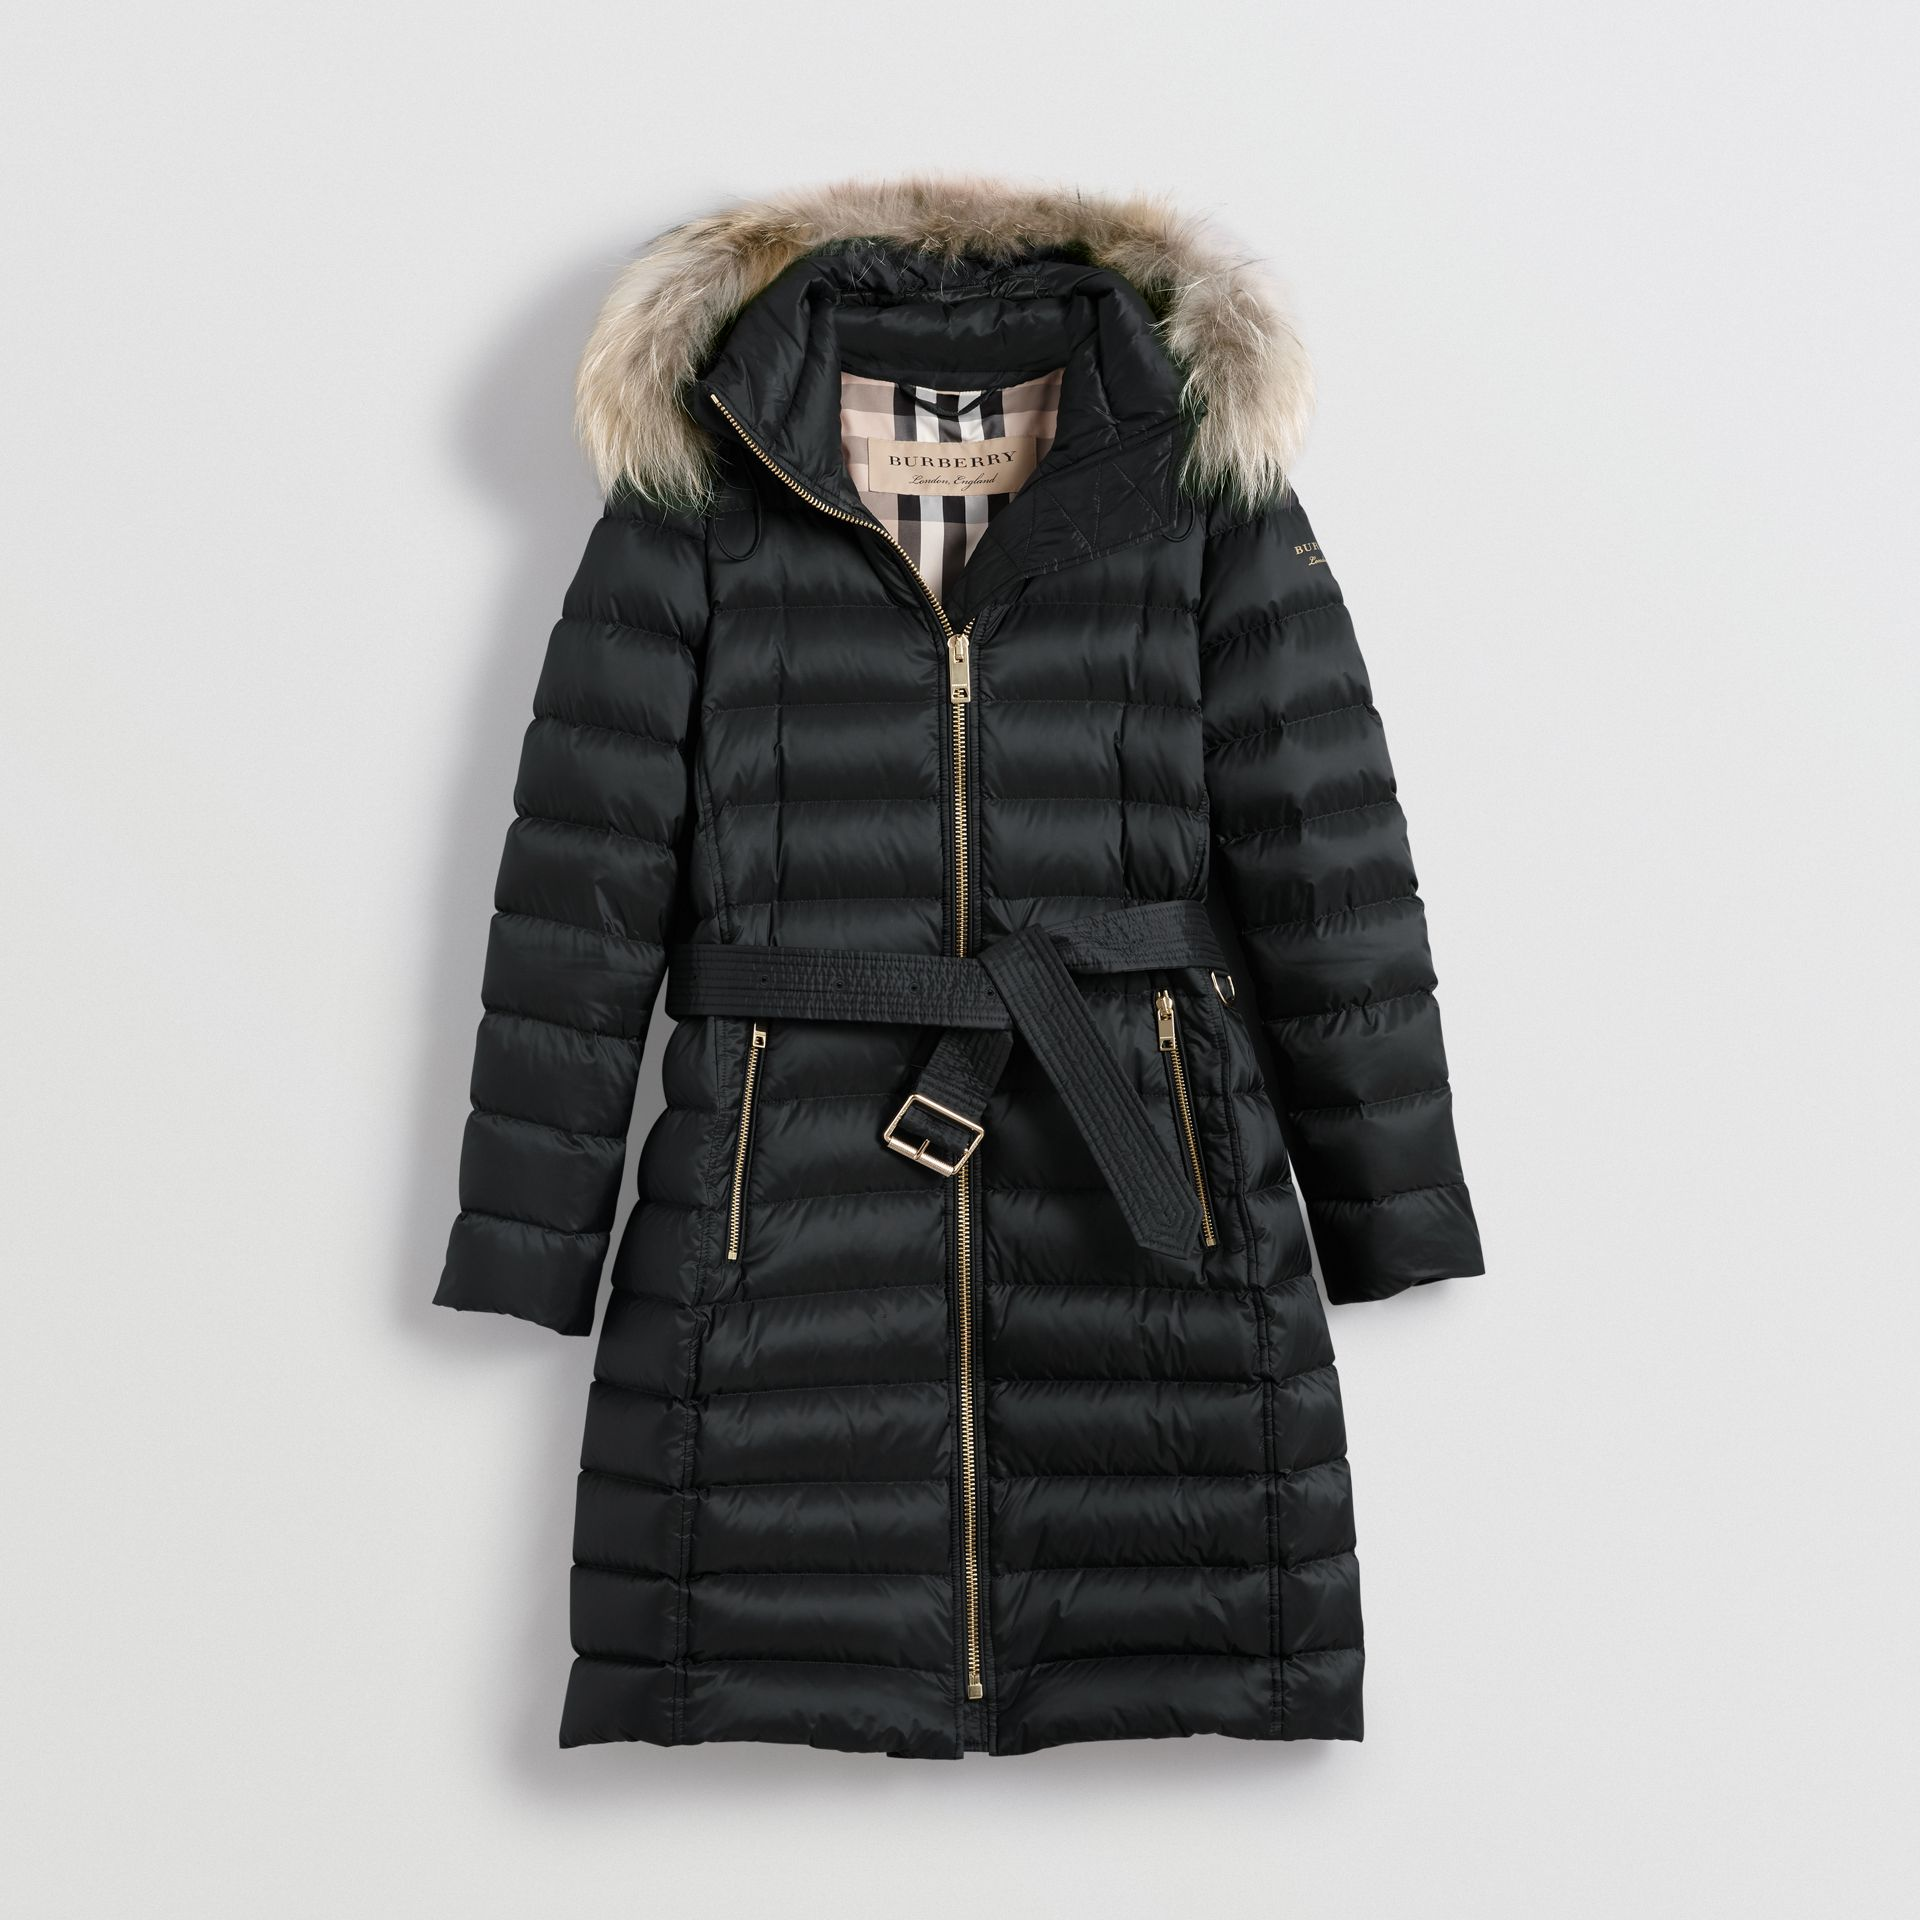 Detachable Fur Trim Down-filled Puffer Coat with Hood in Black - Women | Burberry - gallery image 3